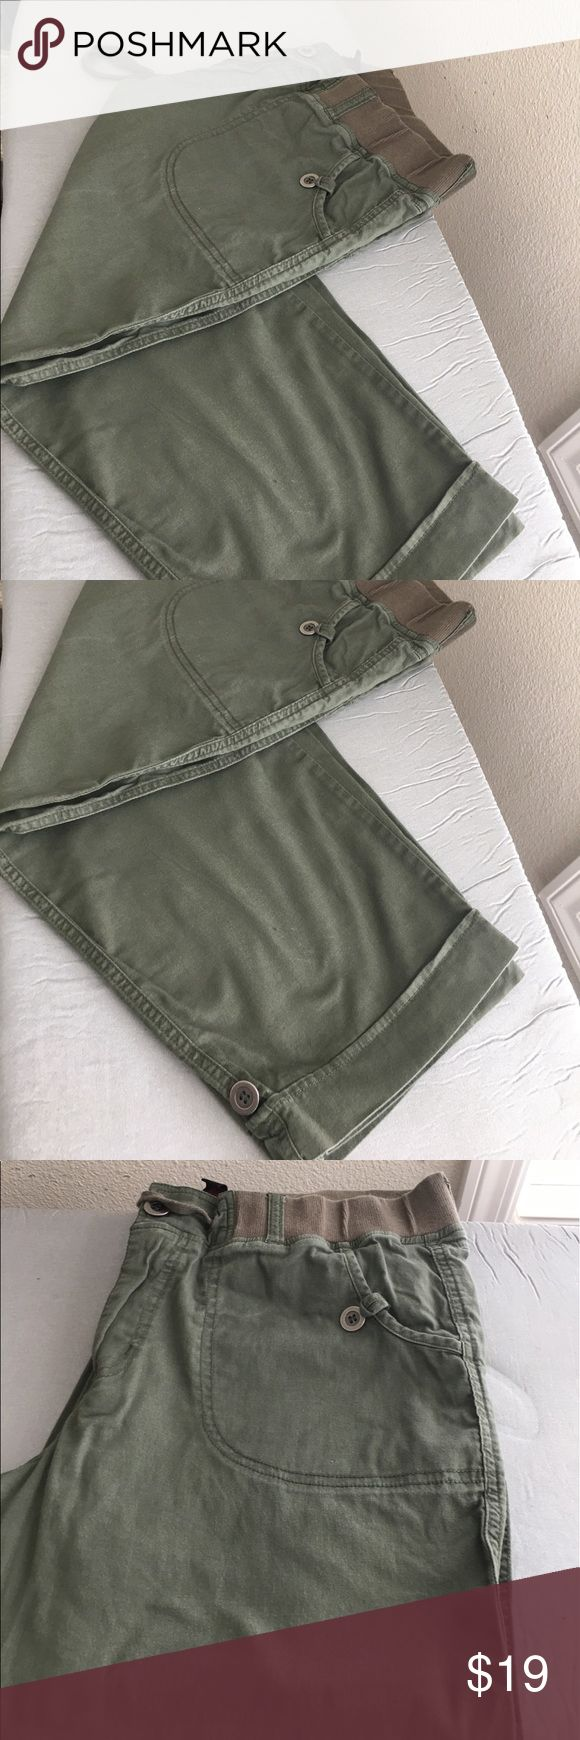 """JW Cotton Blend Khaki Bermuda Pants - S: 12 - EUC Very Cute JW Khaki Bermuda Pants Size: 12 - EUC Buttons on the pockets  Buttons at the hems  97% Cotton, 3% Spandex  Zipper & Button Closure - Also pull on style - elastic tie waist  Khaki color The measurements are, unstretched, laying flat: Waist: 17"""" Hips: 22"""" Inseam: 20"""" Very trendy and comfortable  From a smoke free and a pet free environment JW Pants Capris"""